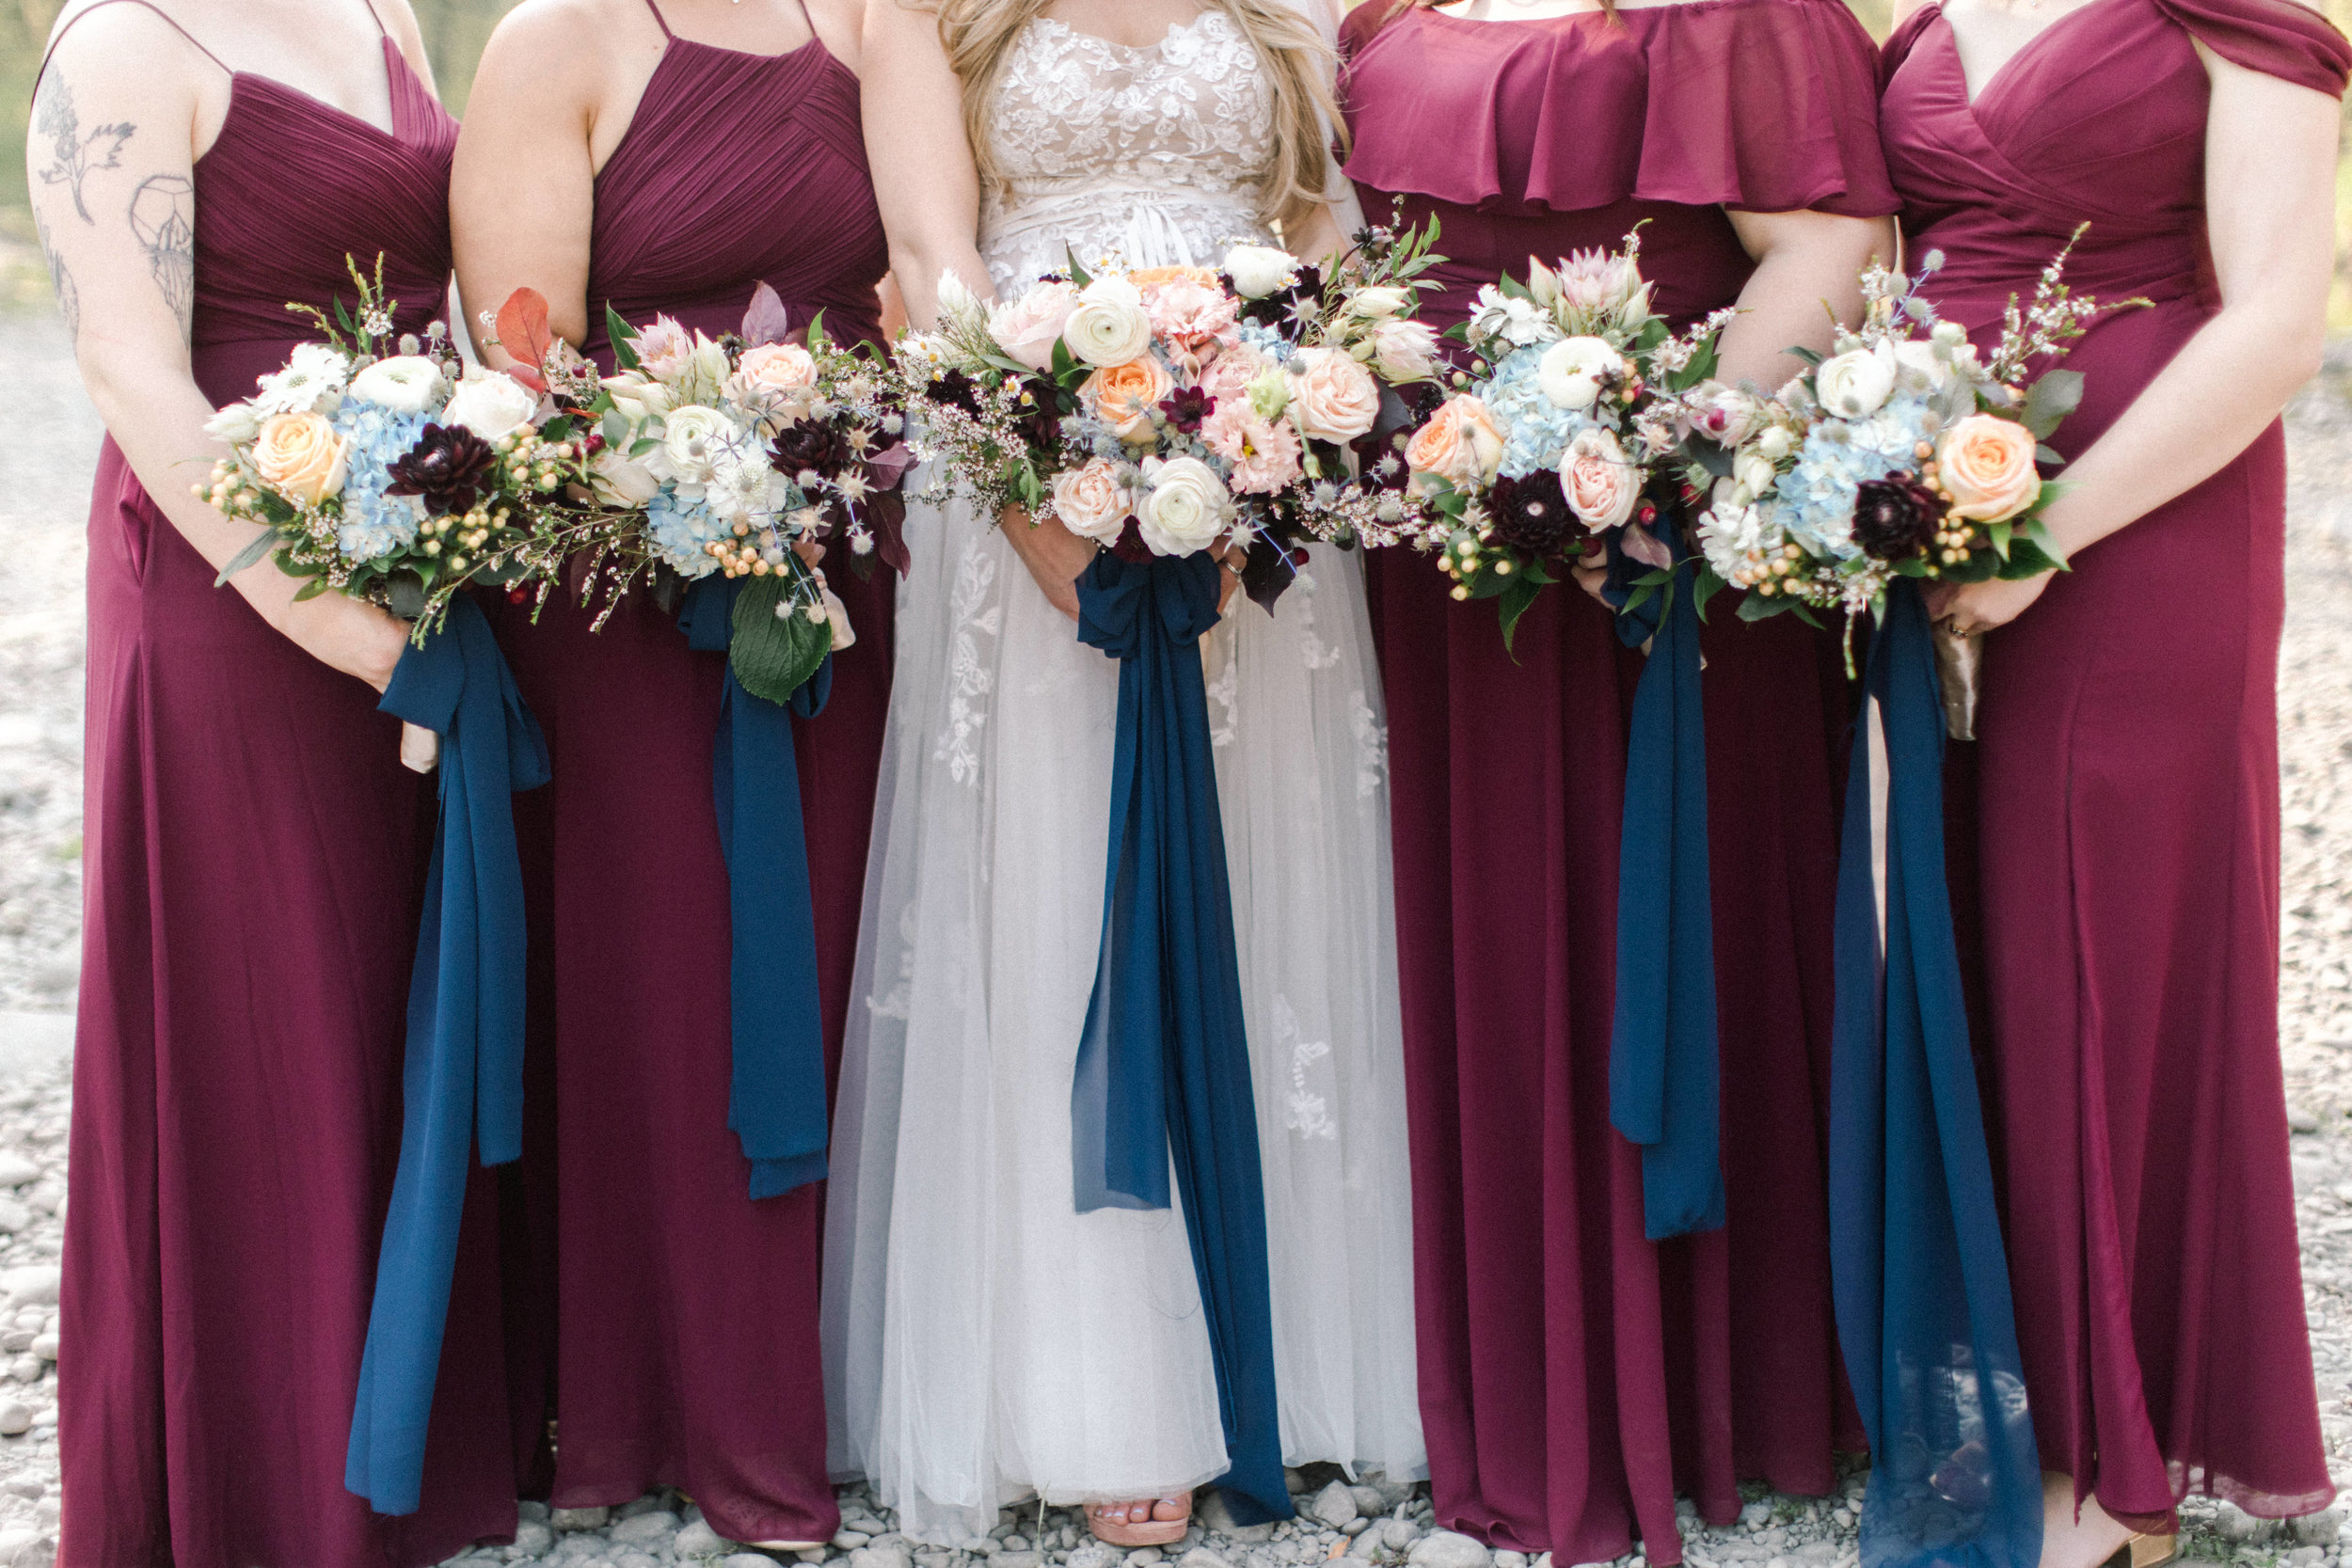 Bridal Party Bouquet Inspiration: 8 Bouquet Pictures Sure to Get You in the Mood For Wedding Season - Meadow and Vine on the Bronte Bride Blog